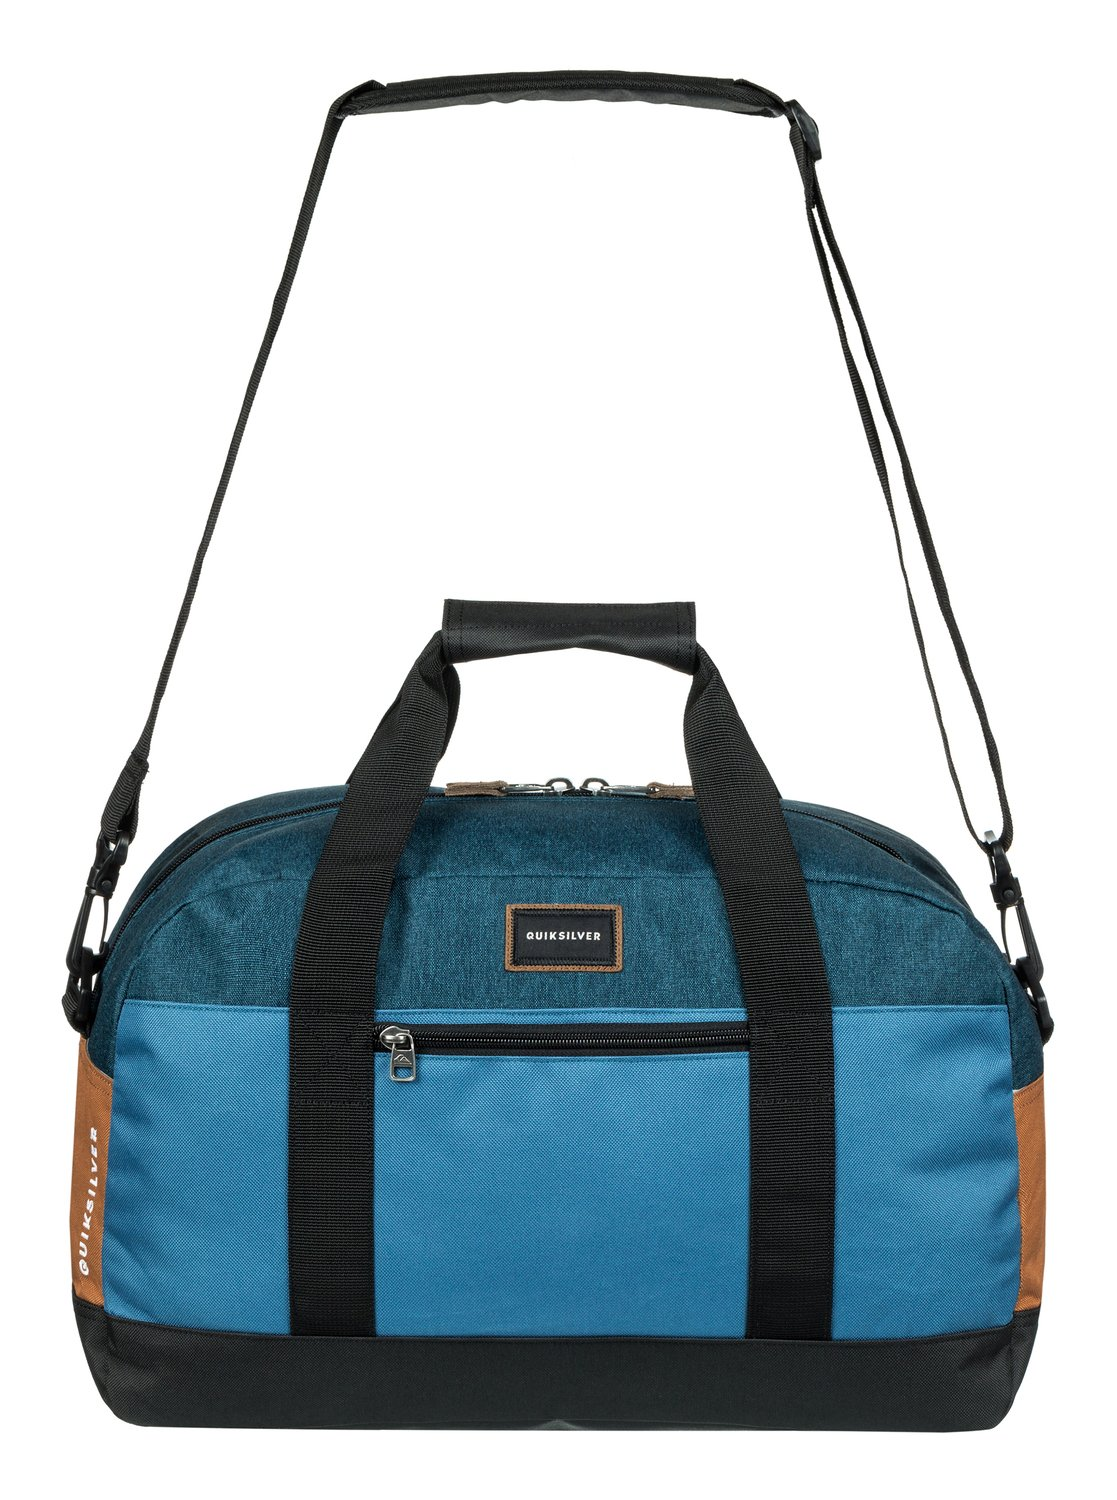 Quiksilver Sac bandoulière Small Shelter DjviDW7Pbs